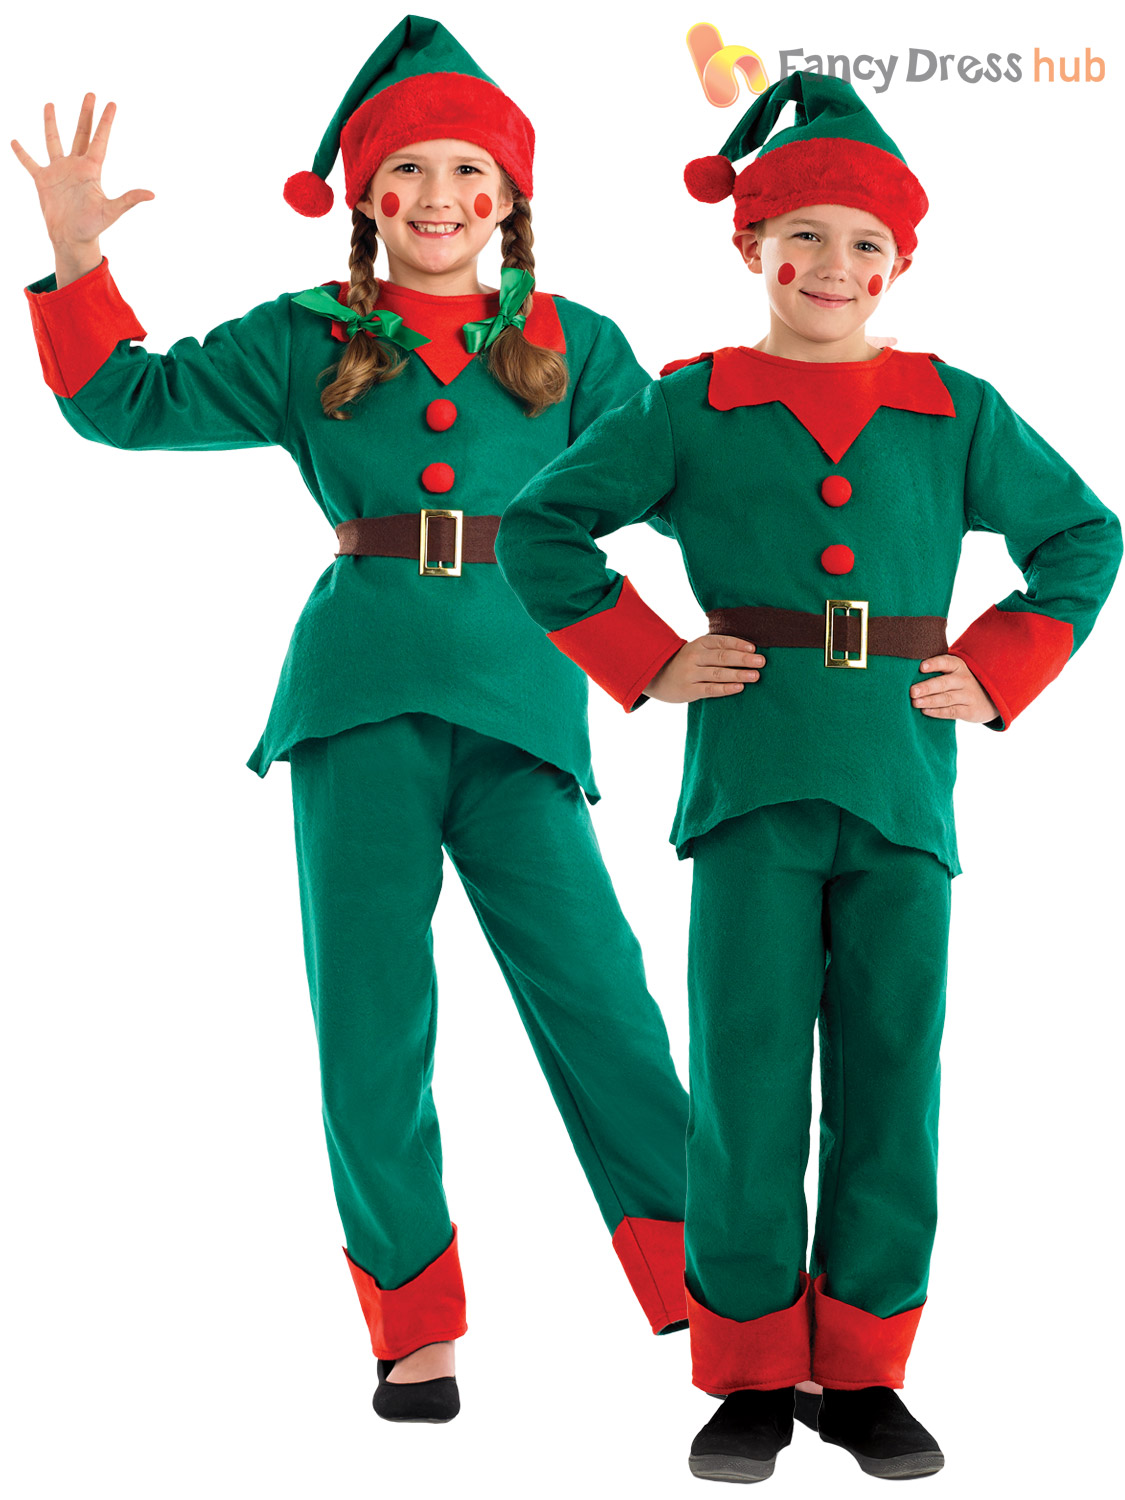 731764f89 Child Elf Costume Boys Girls Christmas Fancy Dress Santas Little ...